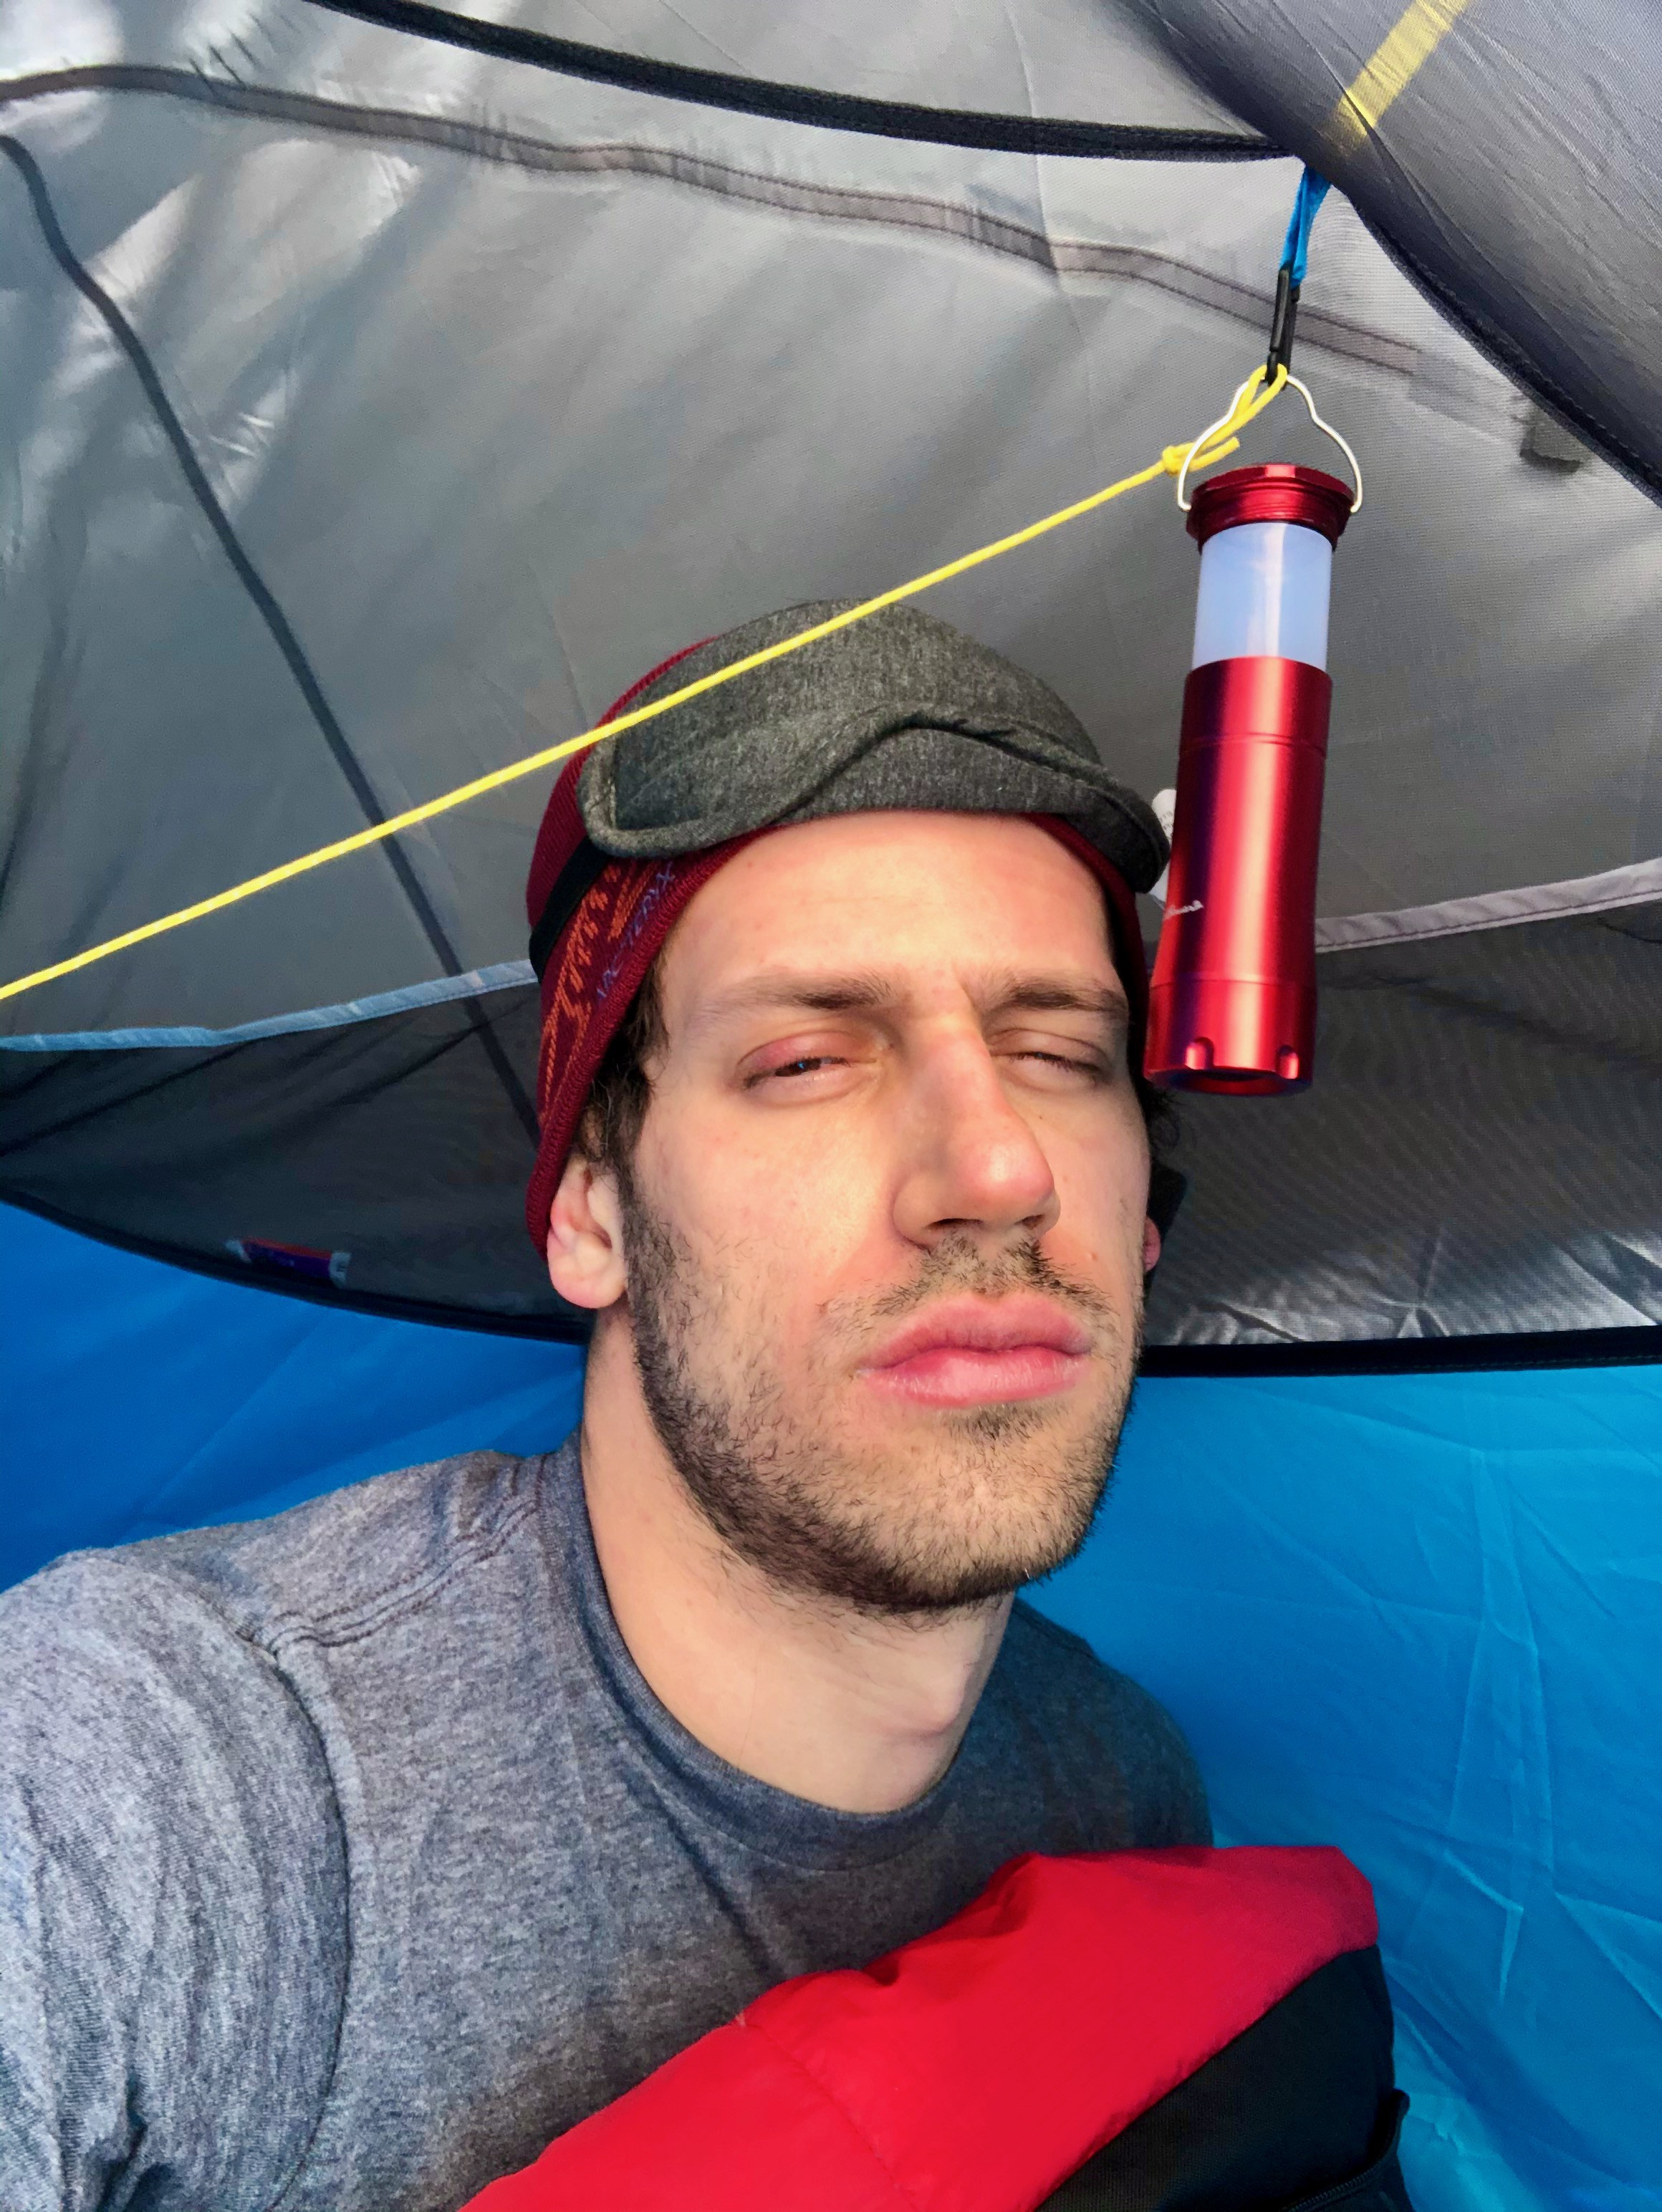 Cameron camping, but looks upset about it.